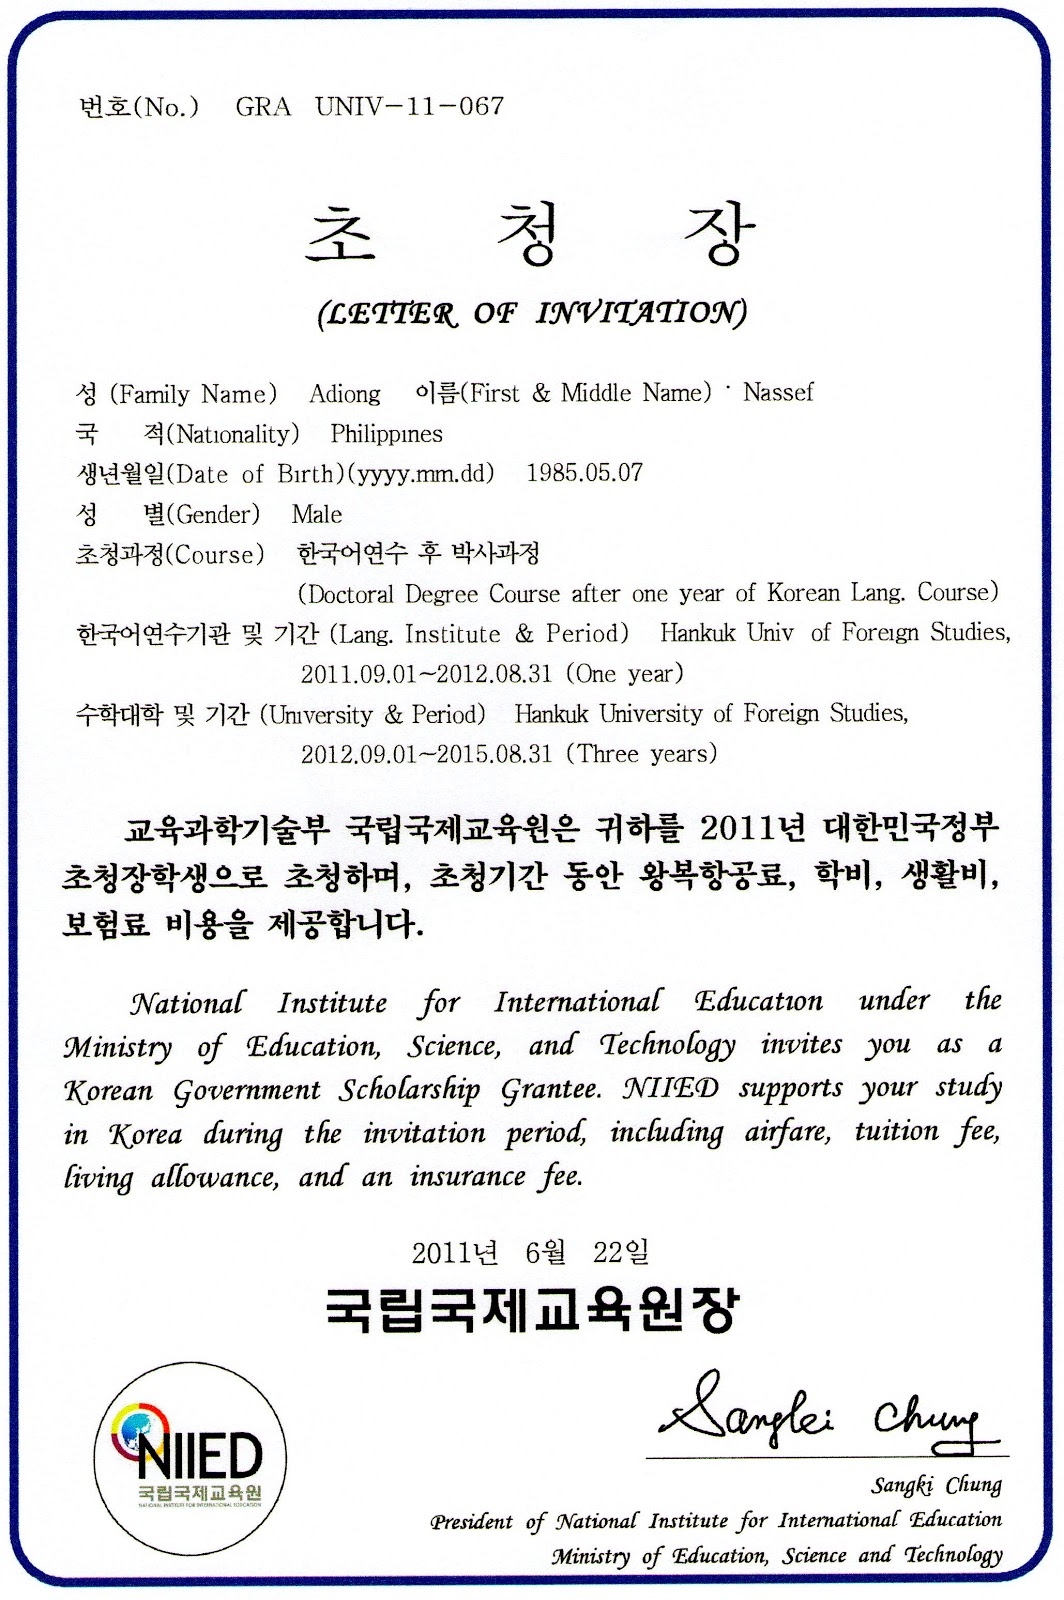 2011 korean government scholarship program for graduate students at korean government scholarship program kgsp as a phd student in international area studies focusing on middle eastern and north african studies stopboris Choice Image